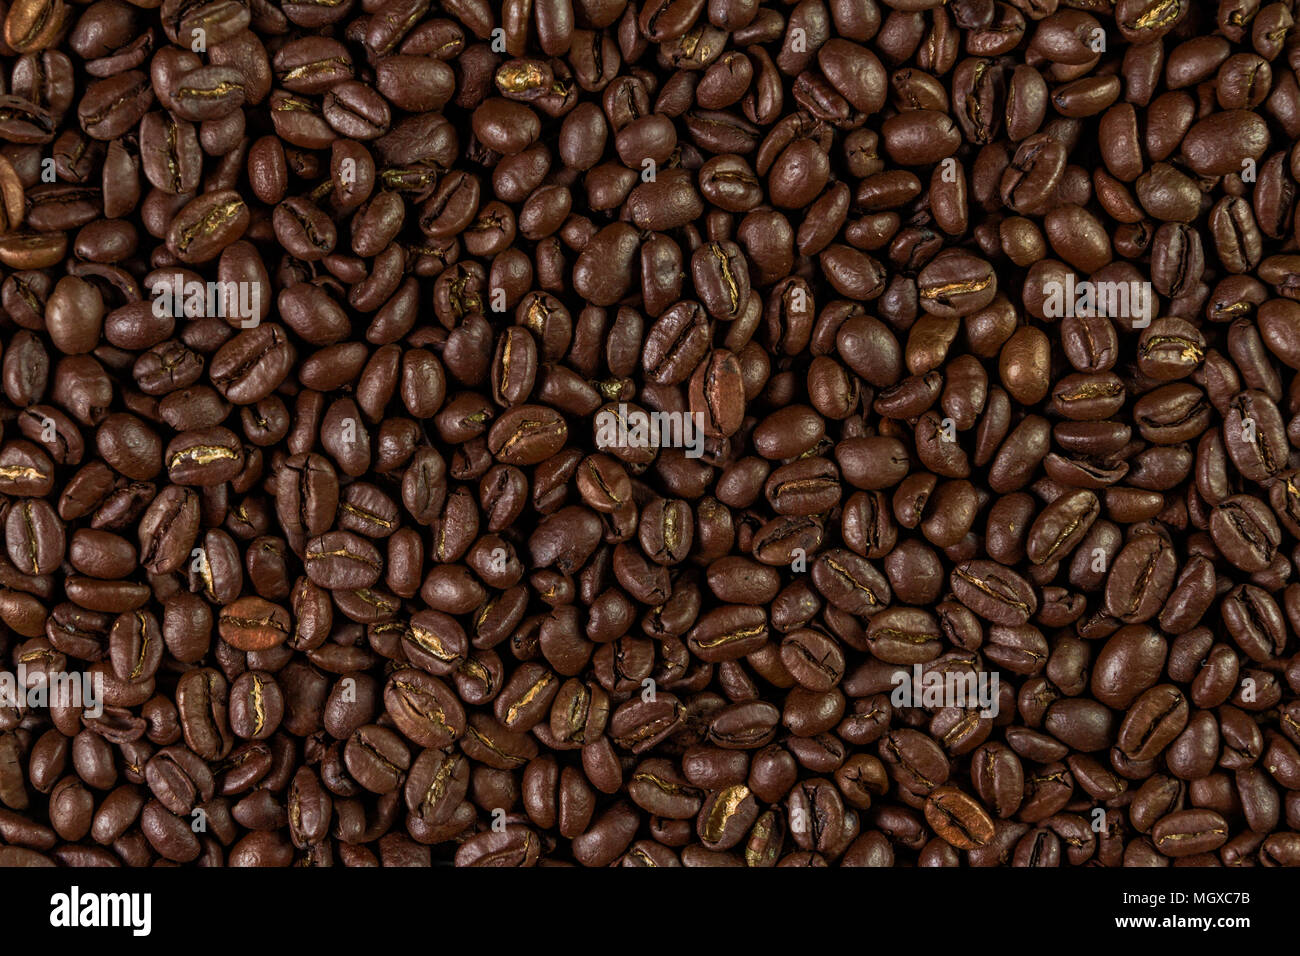 coffee beans background - Stock Image